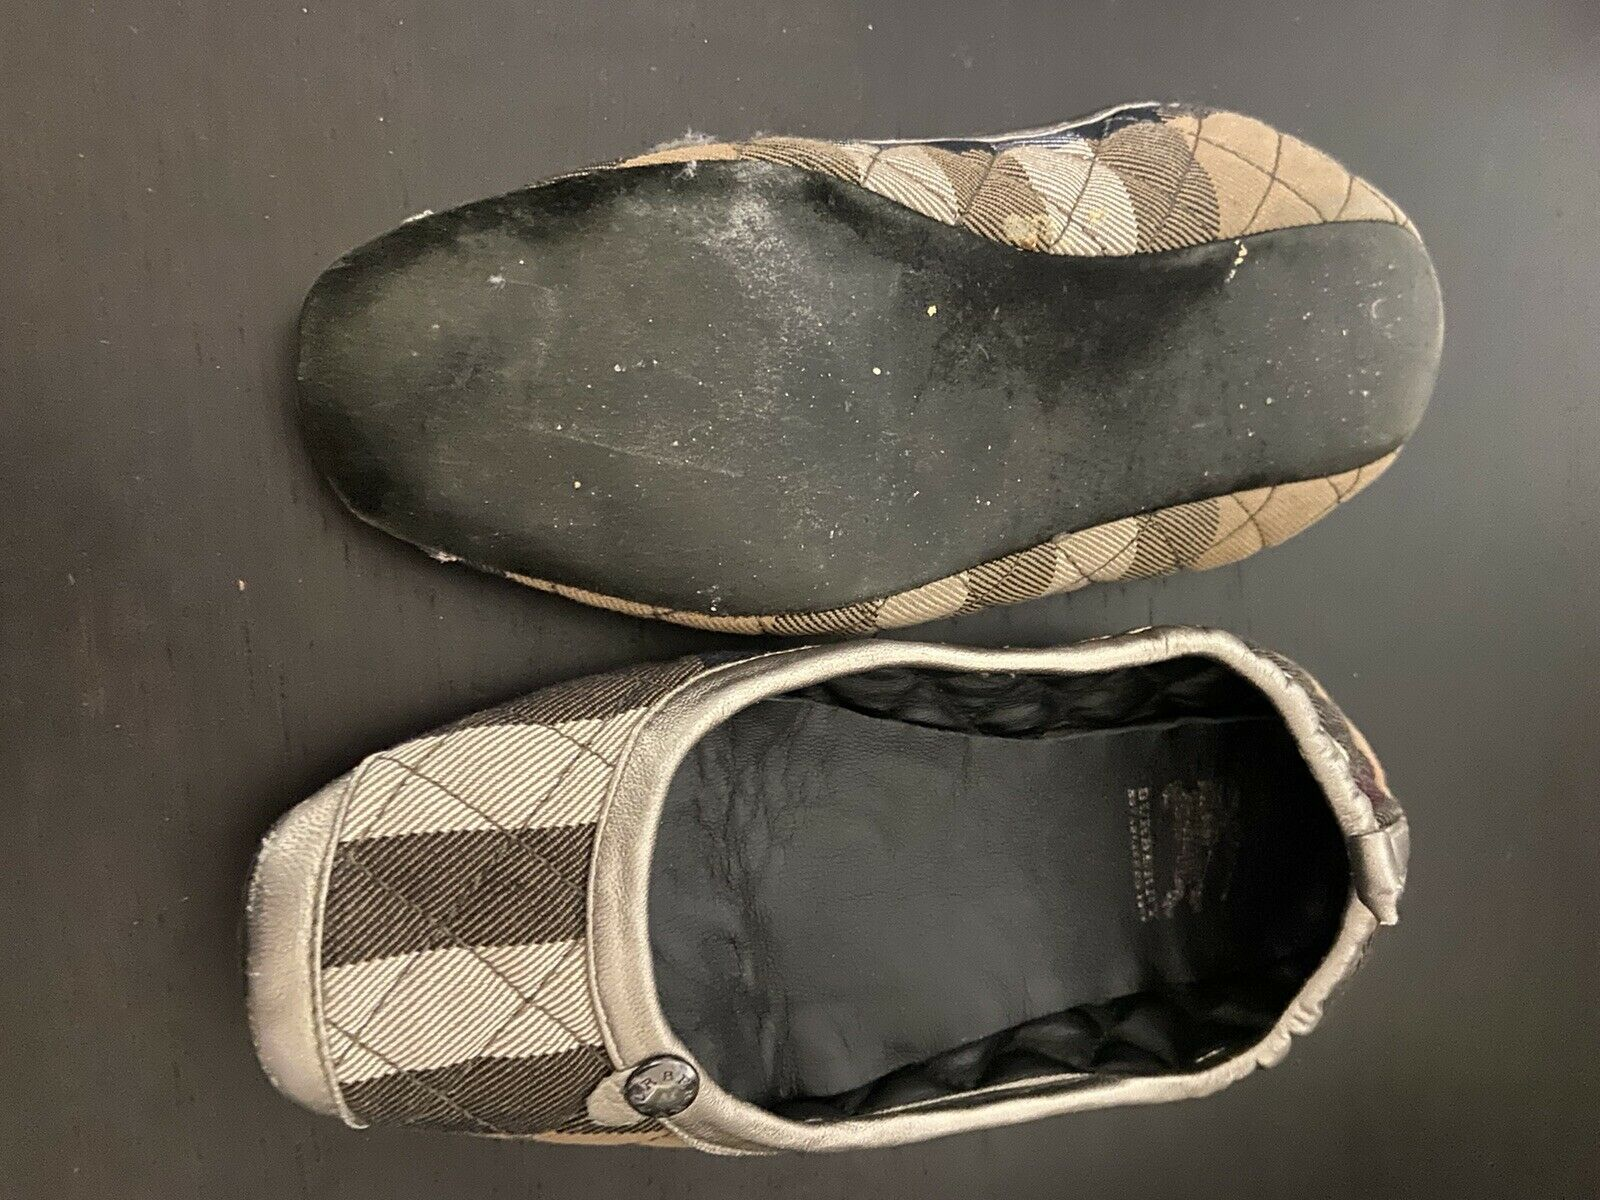 Burberry Women's Slippers SIZE 5 - image 2